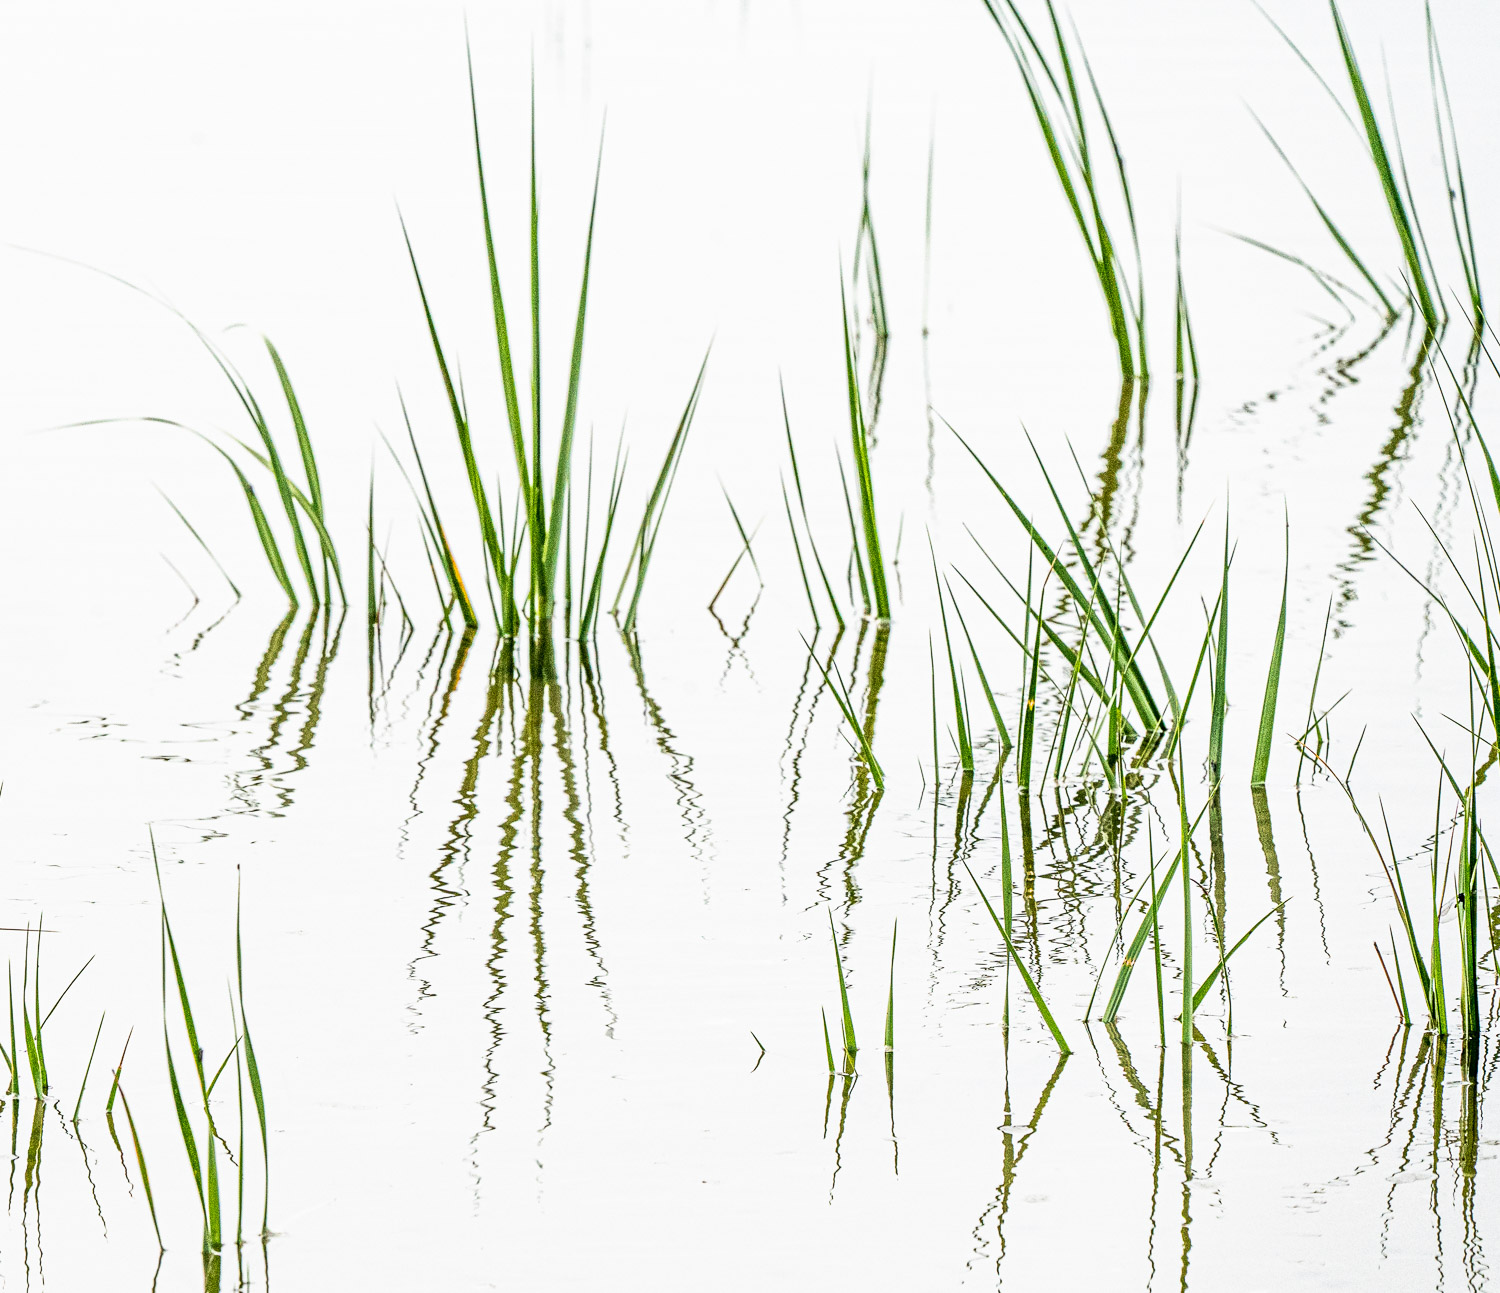 Wetlands grasses mirrored in white water ripples 3053..jpg